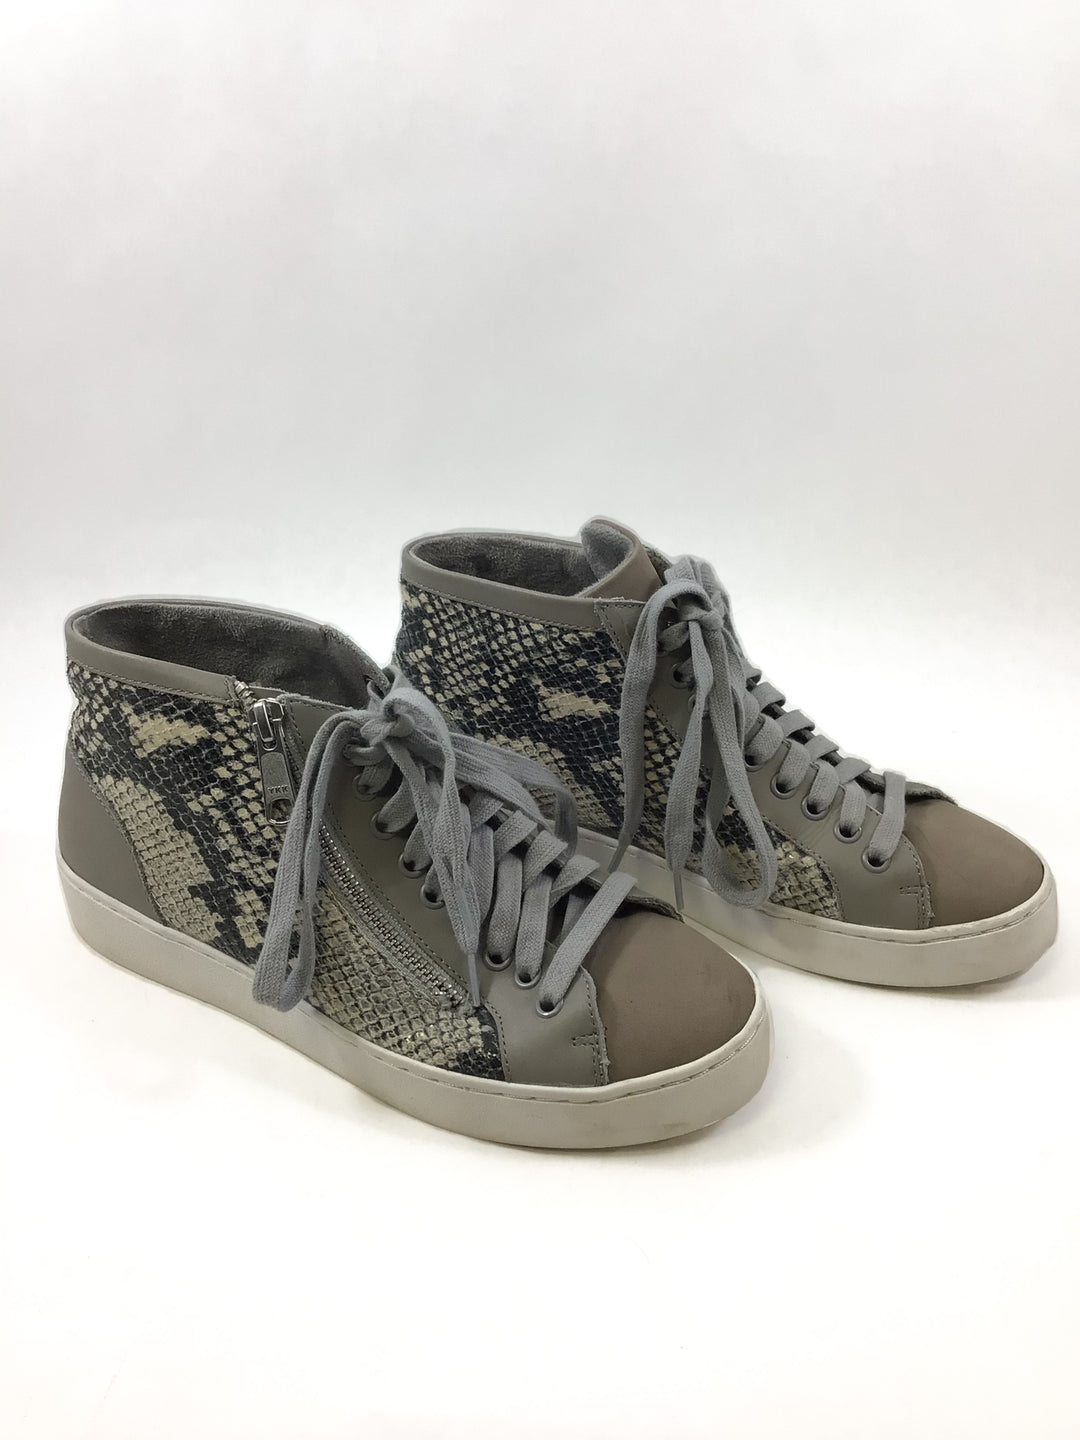 Primary Photo - BRAND: VIONIC <BR>STYLE: SHOES LOW HEEL <BR>COLOR: SNAKESKIN PRINT <BR>SIZE: 6 <BR>SKU: 213-213143-9518